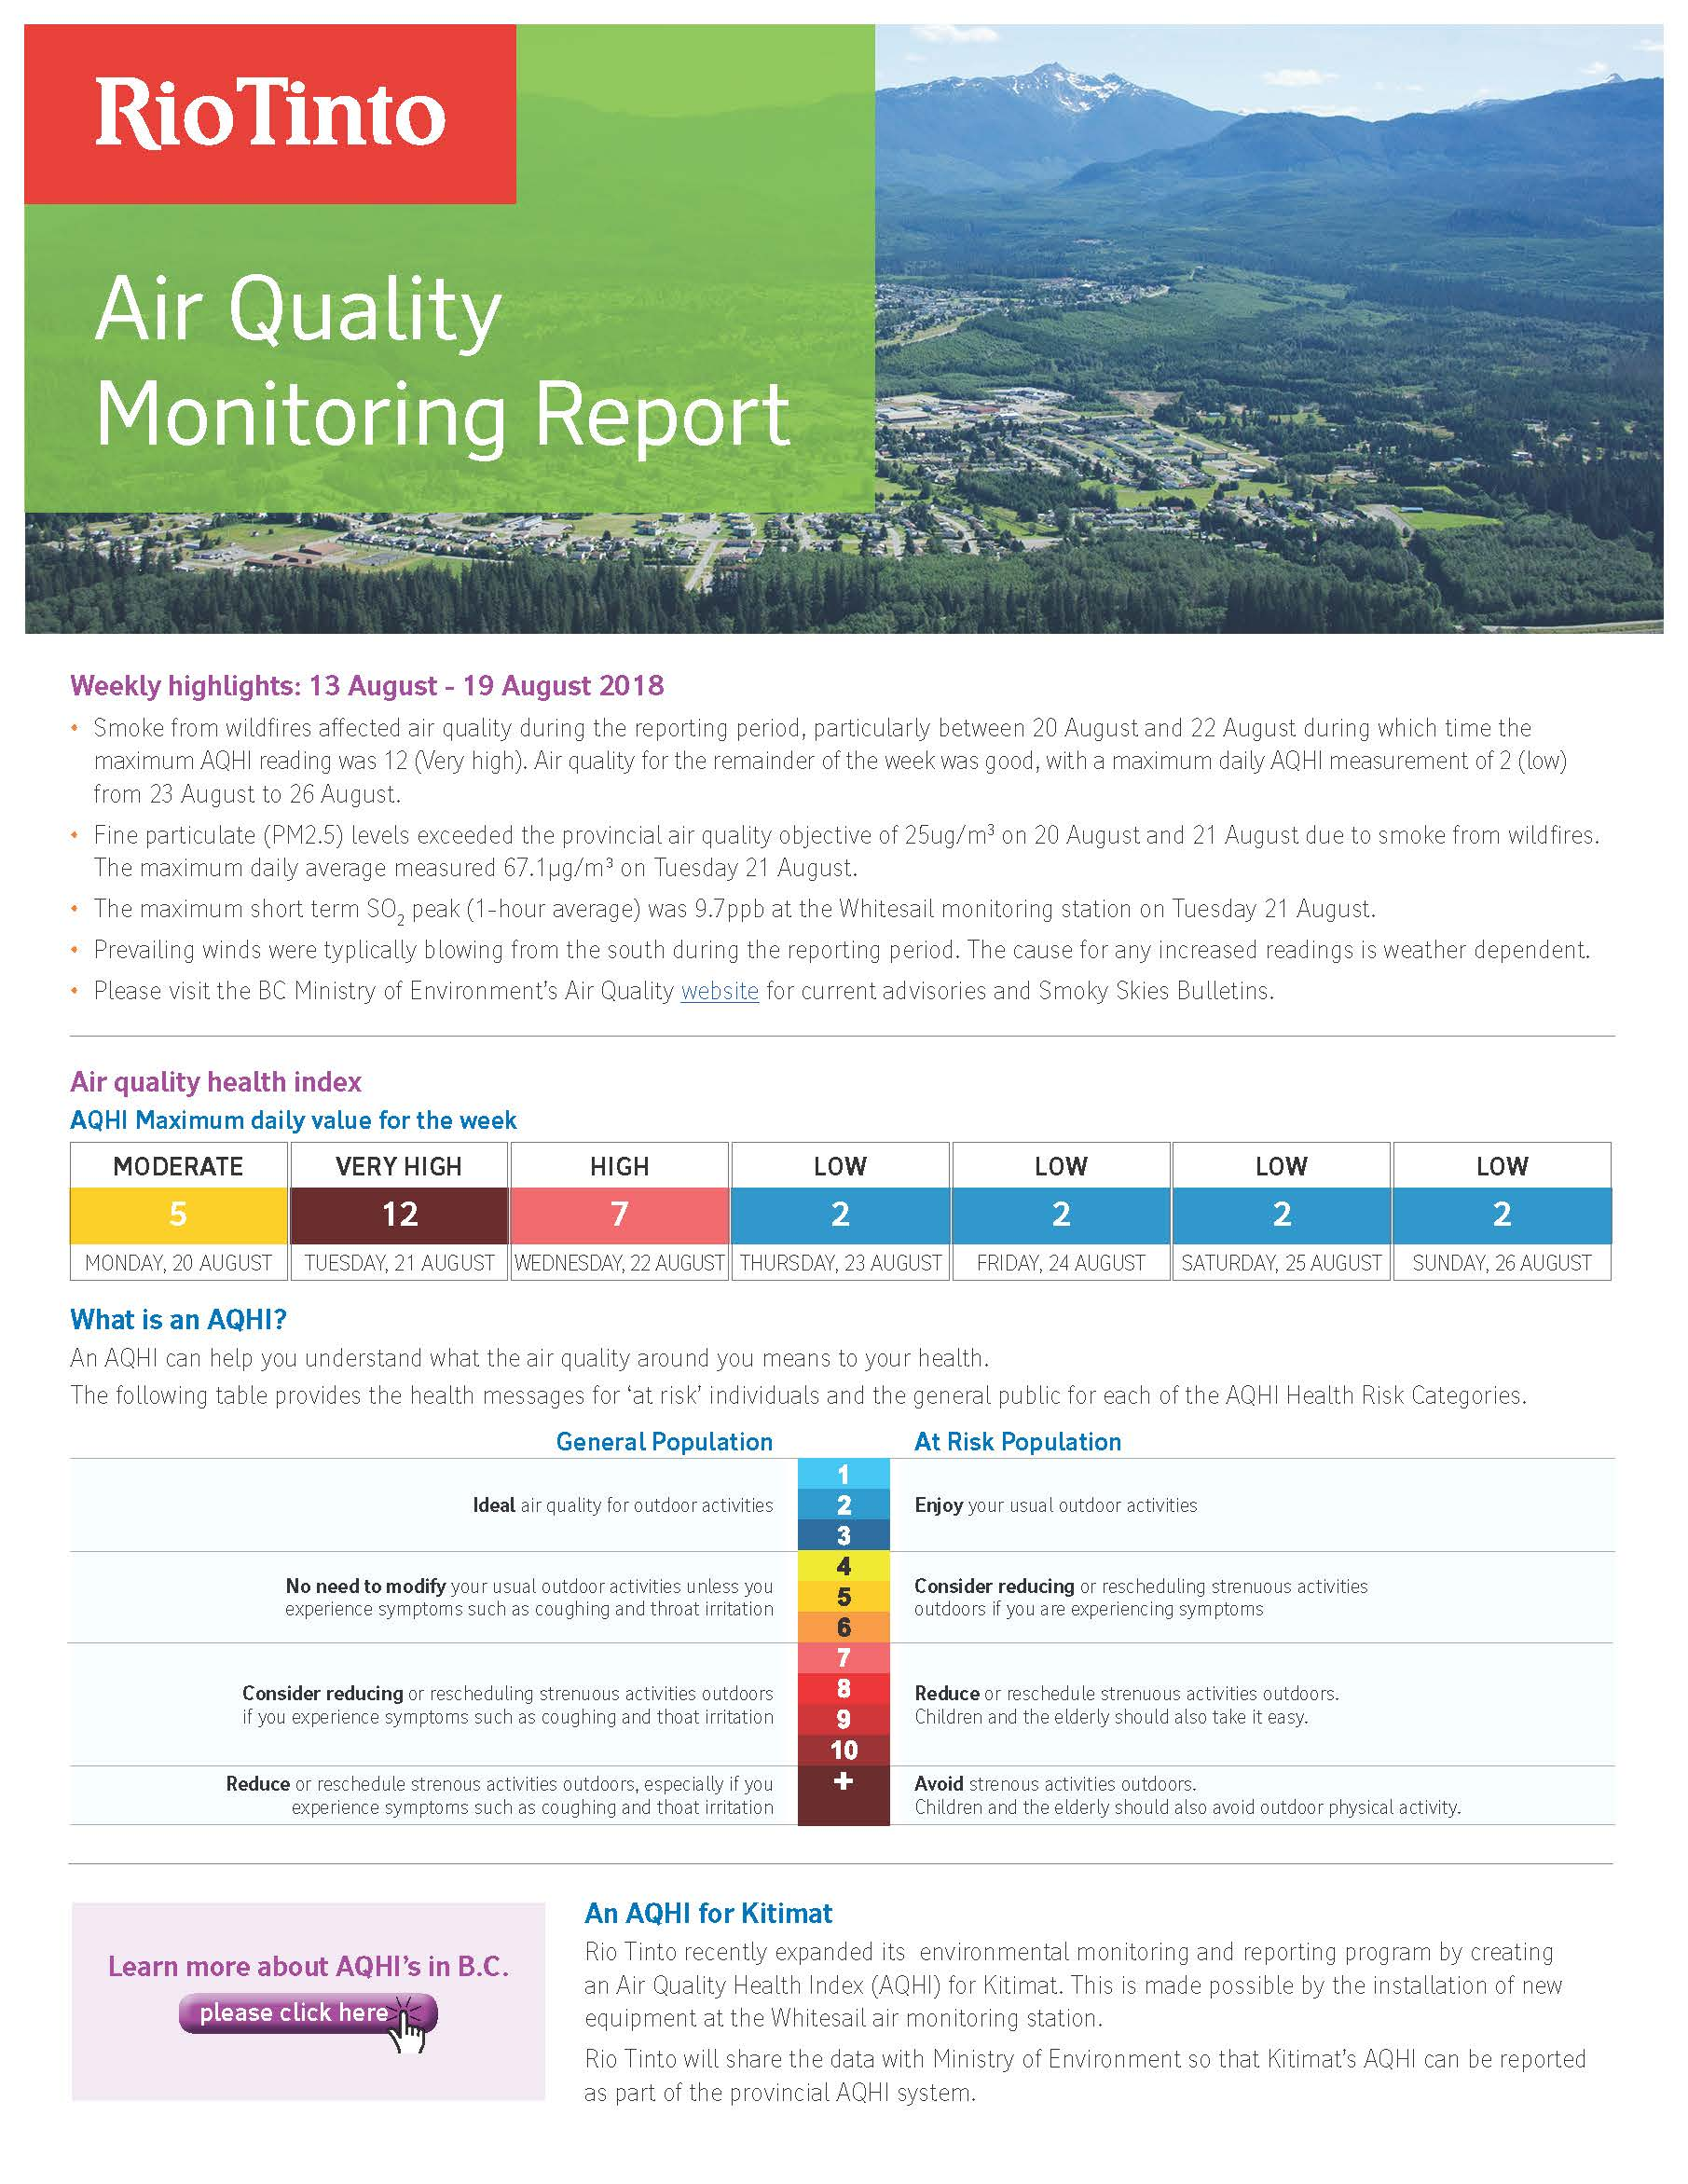 RT Air Quality Monitoring Report, Aug 31 2018_Page_1